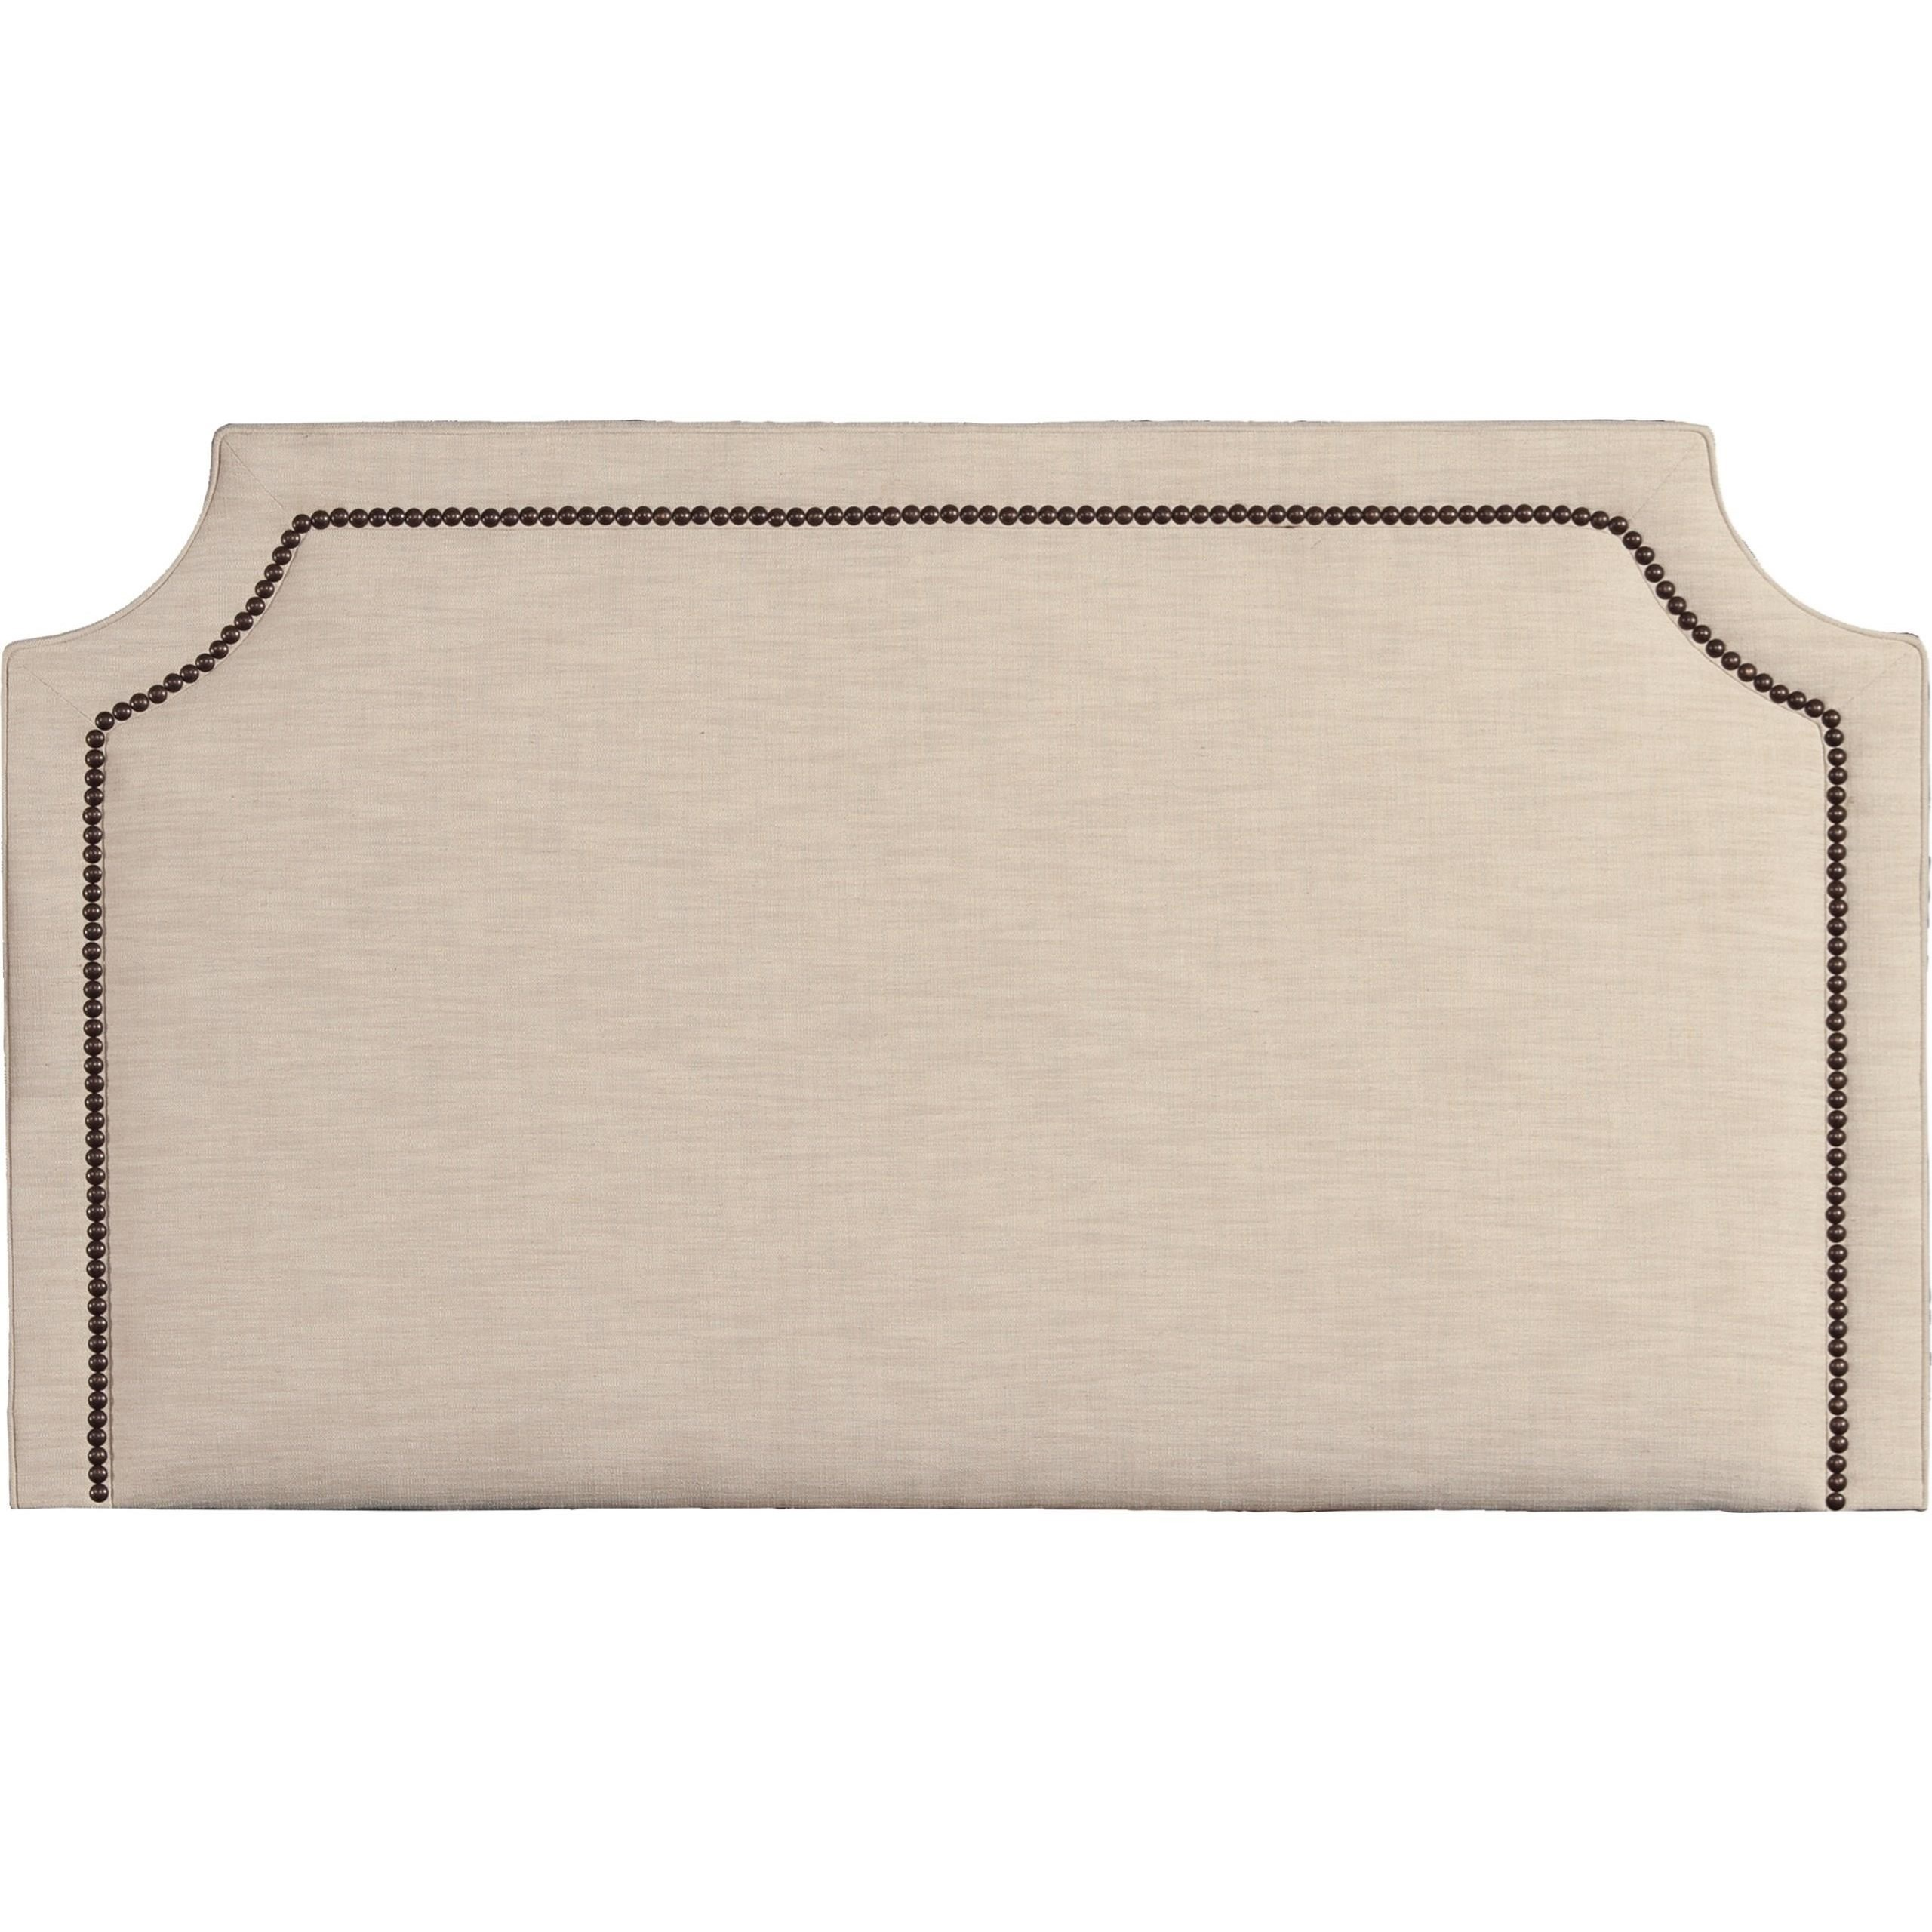 Queen Upholstered Headboard with Nail Head Trim